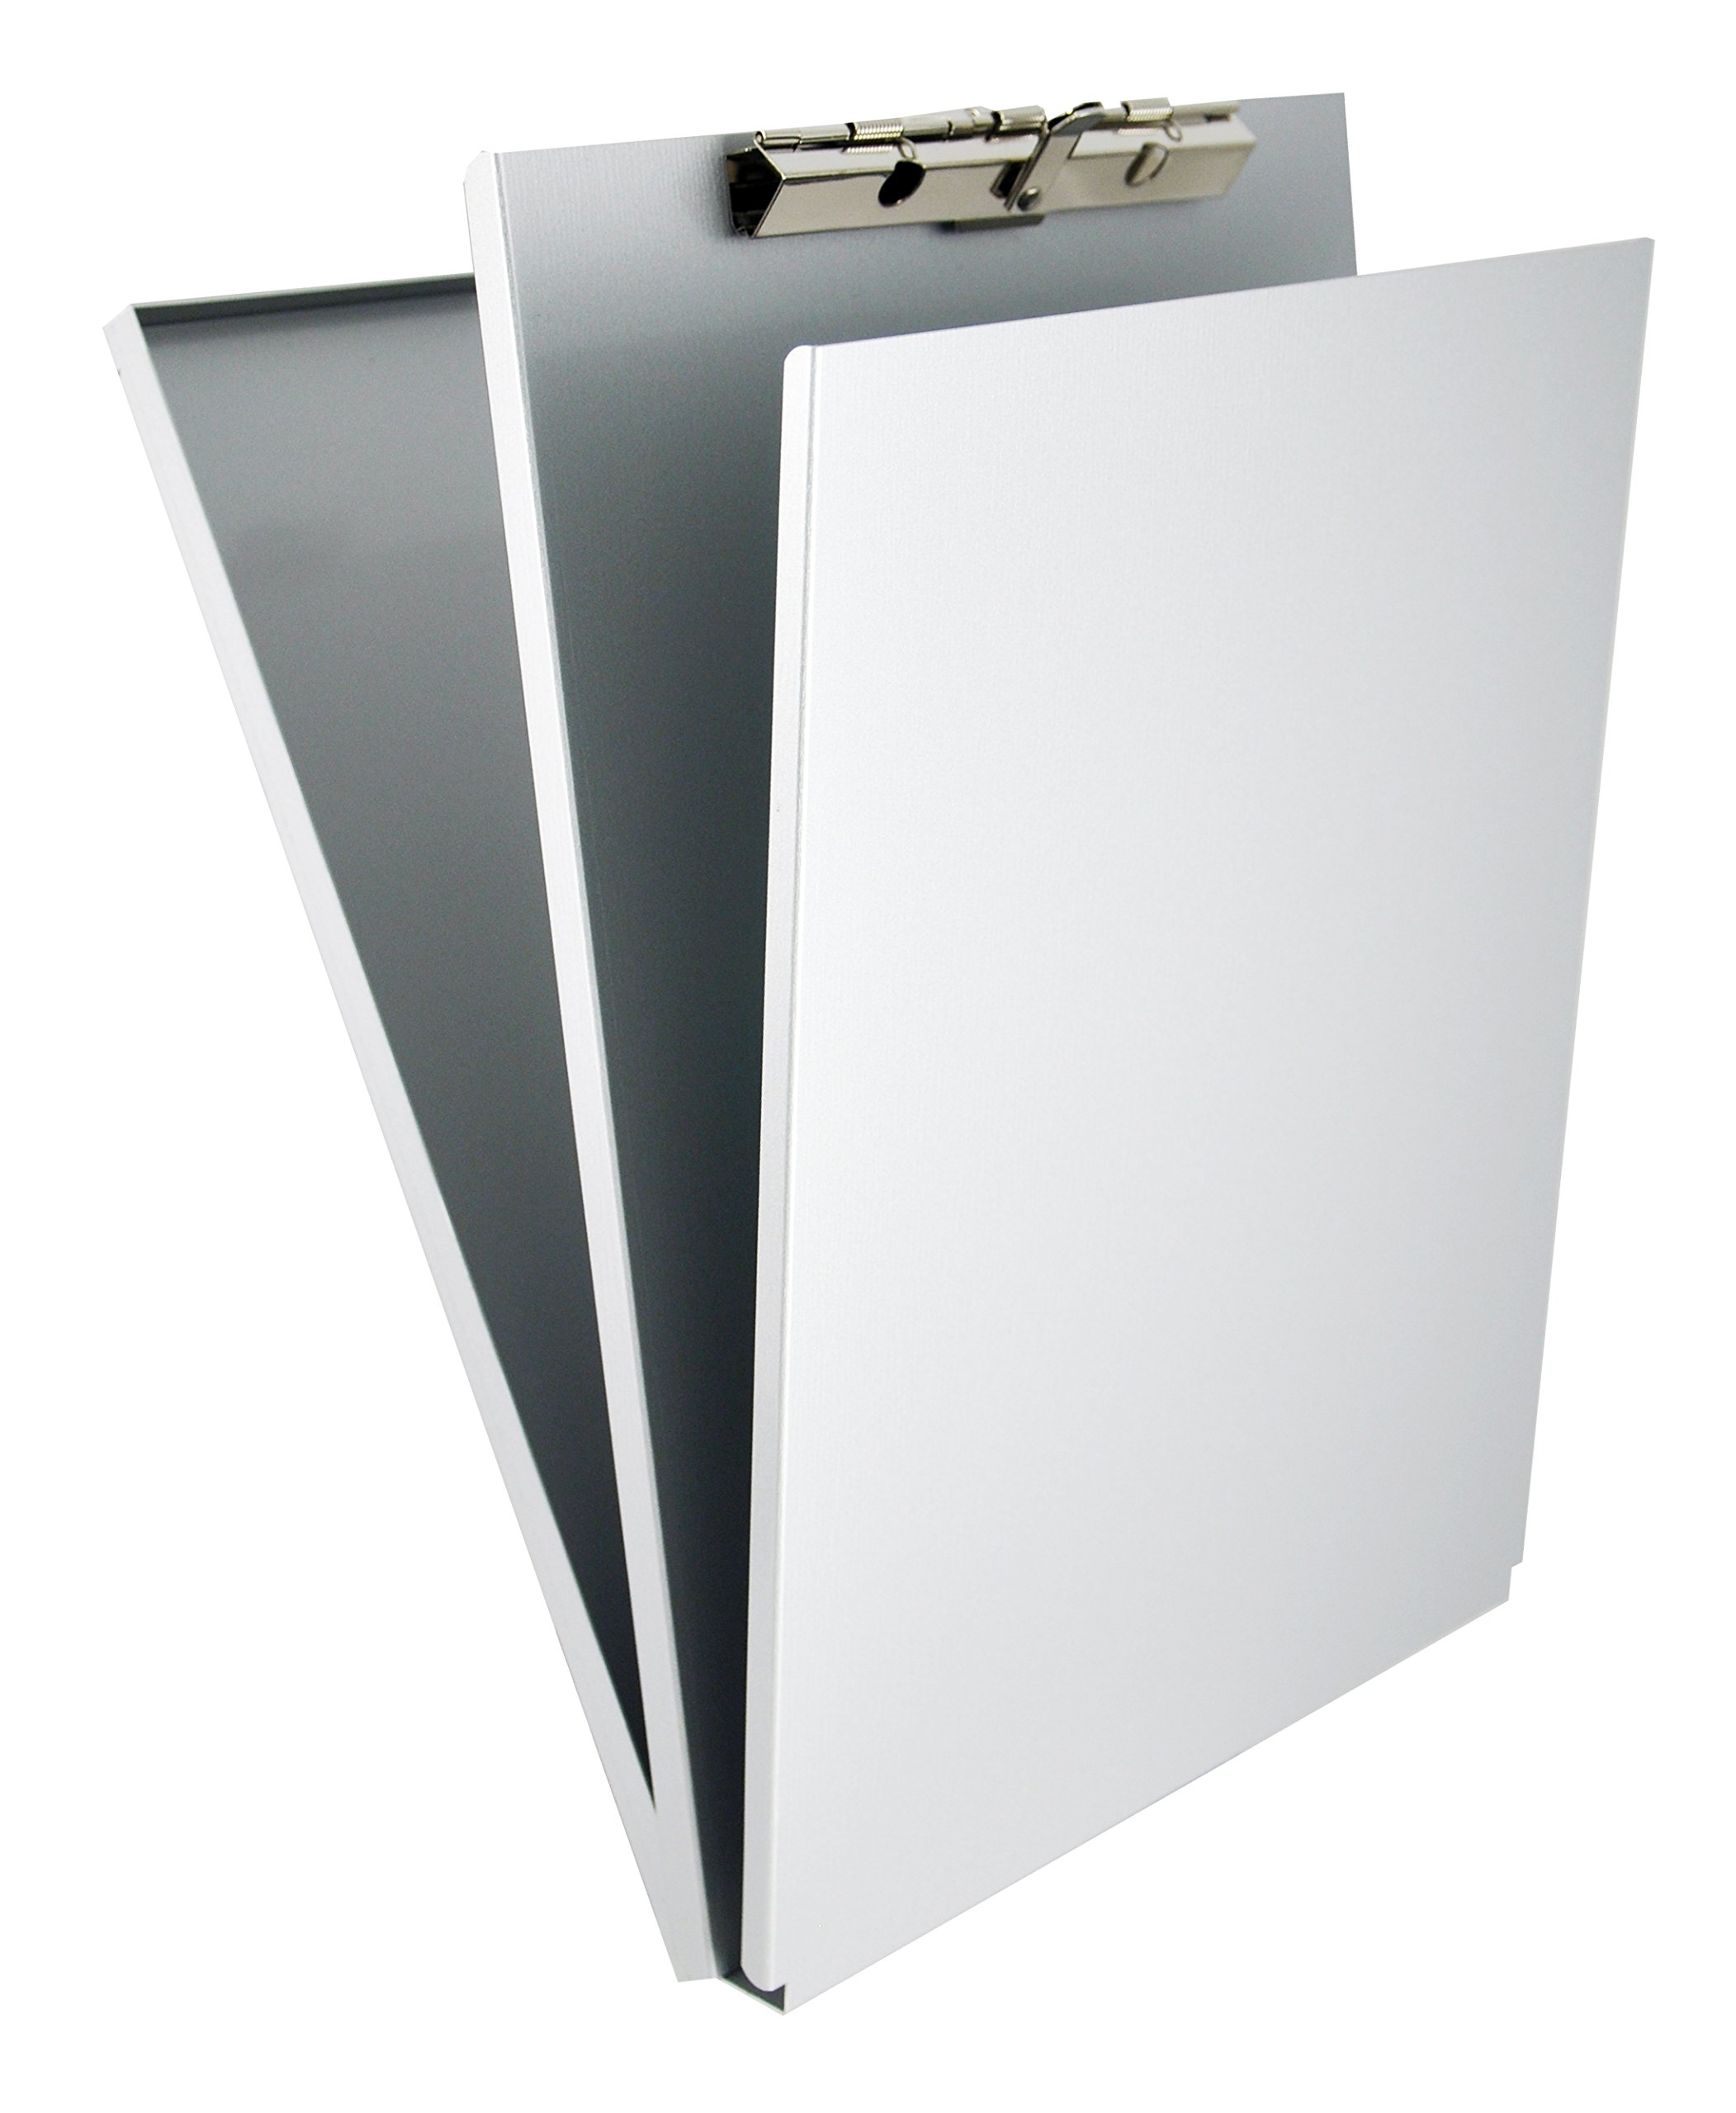 Saunders Recycled Aluminum A-Holder Form Holder - Letter Size Form Holder with Hinged Writing Plate. Office Supplies by Saunders